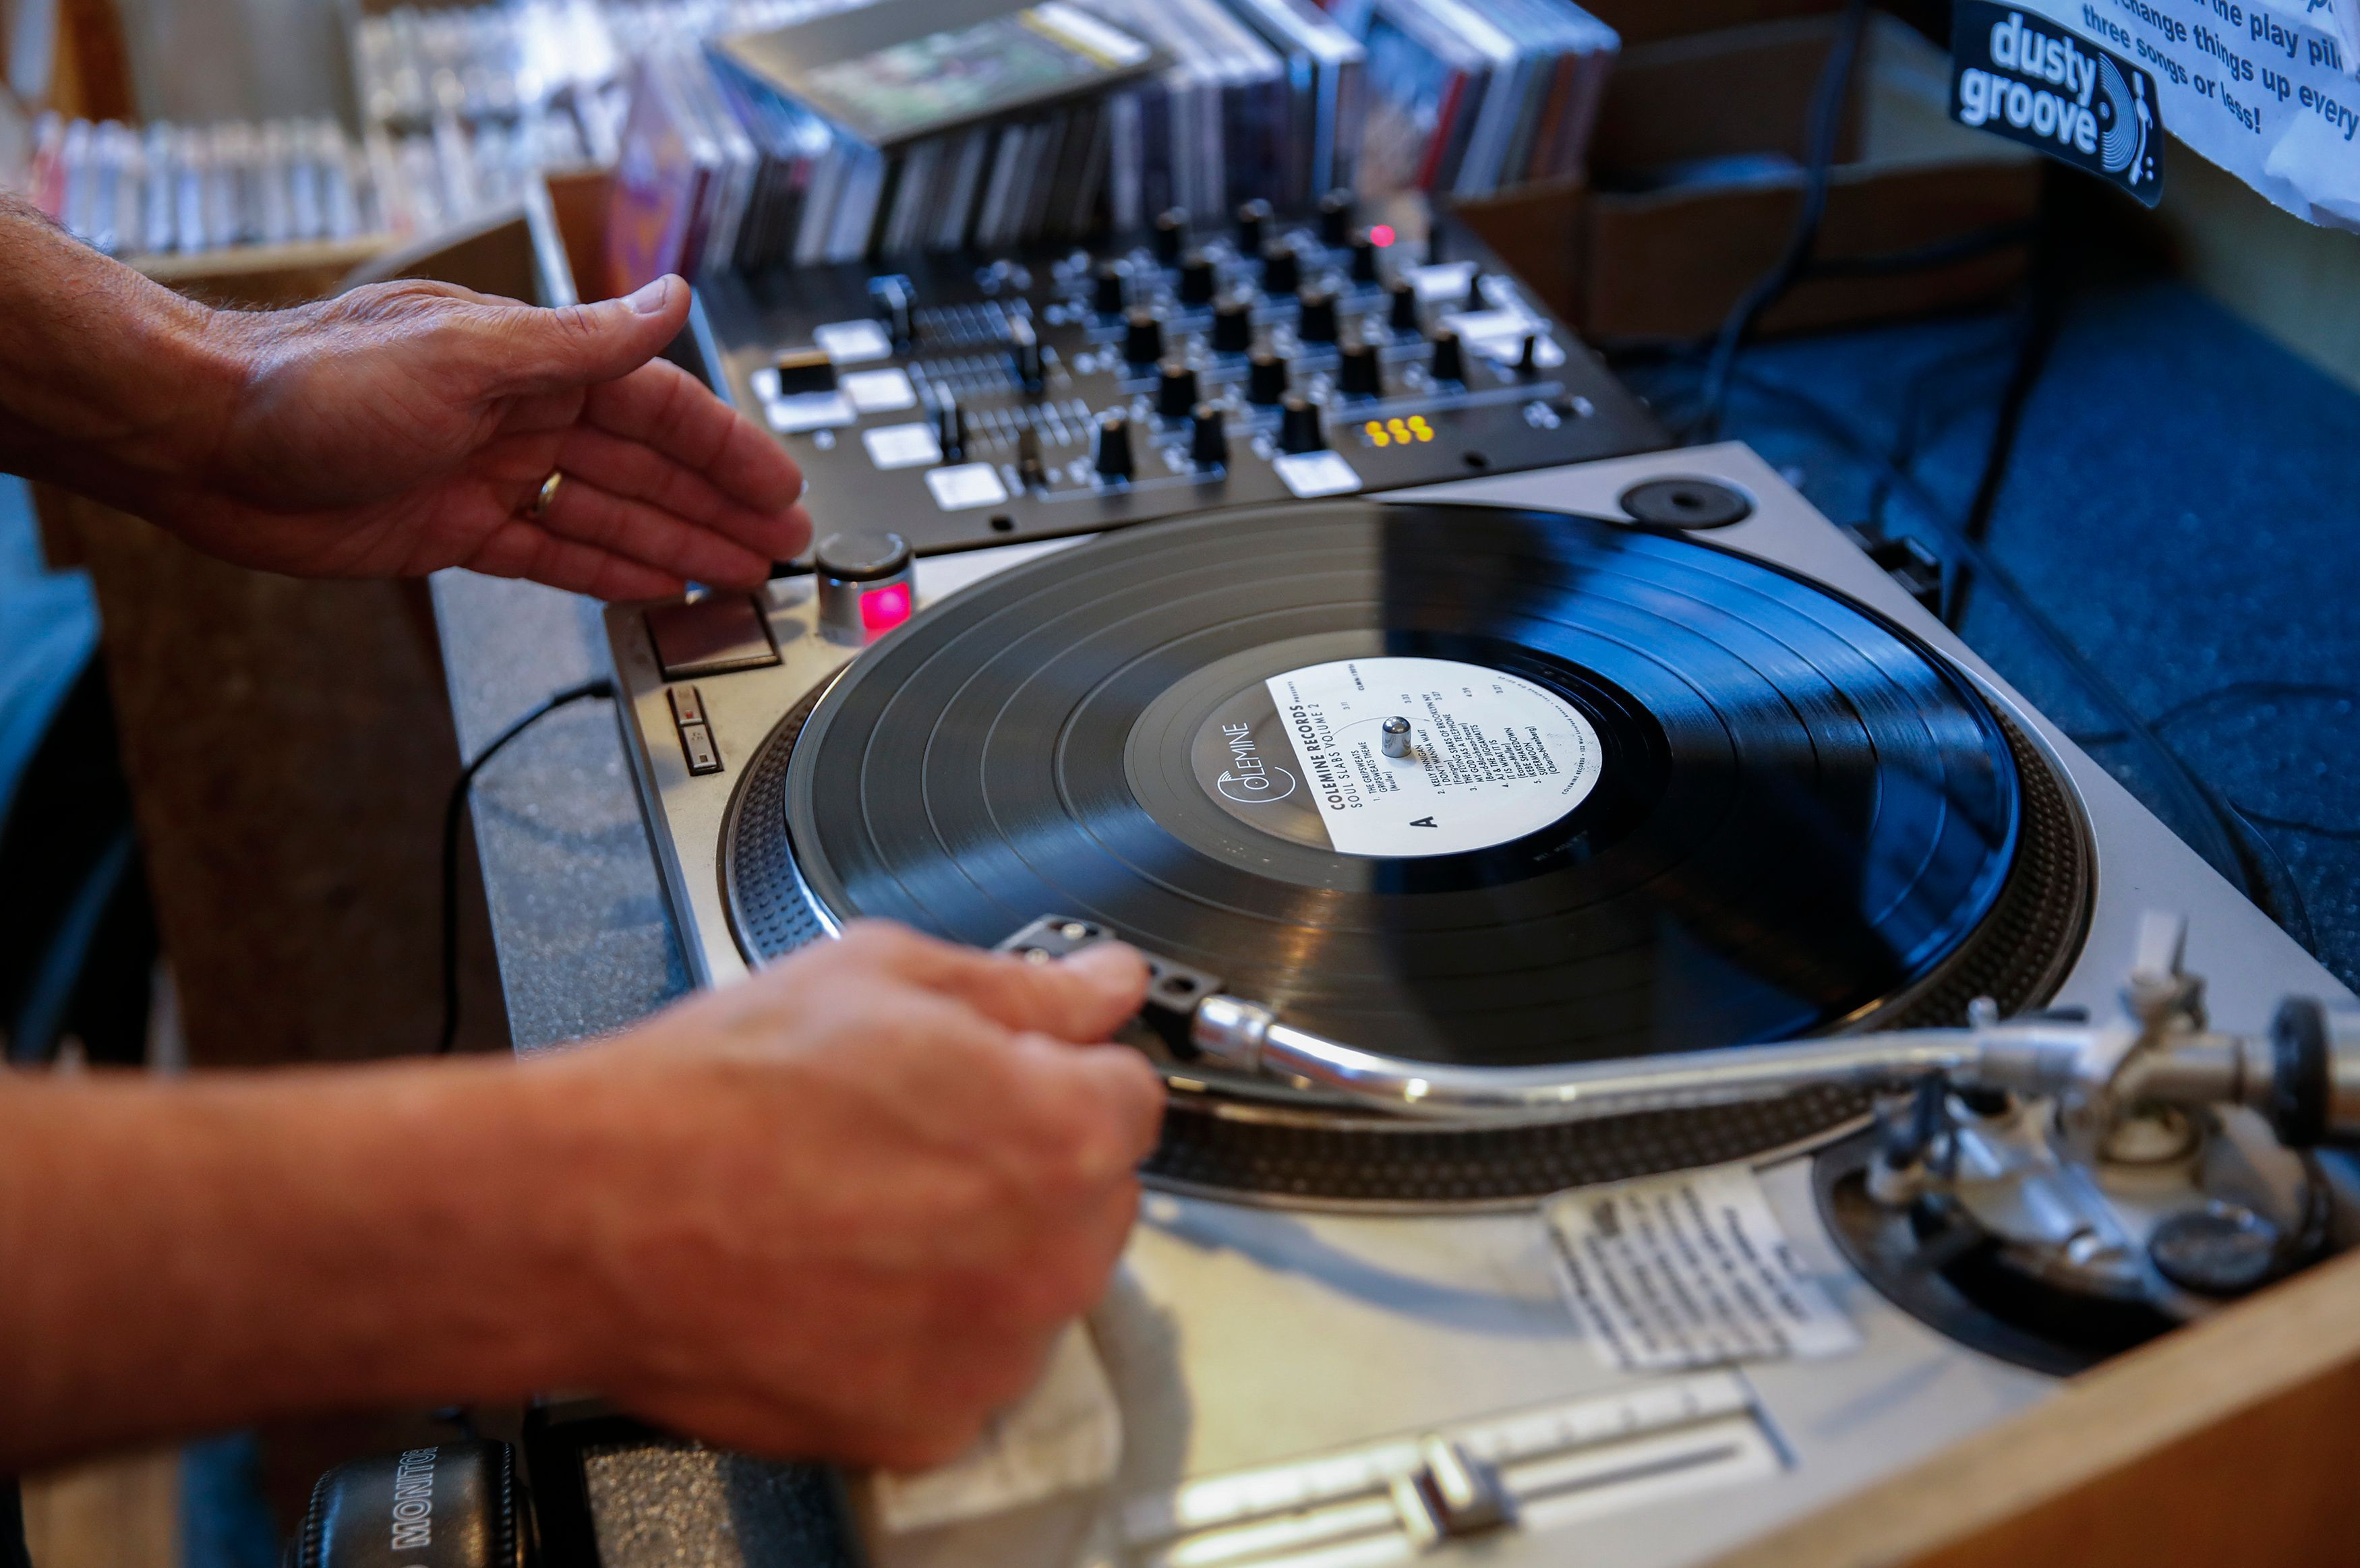 University of Victoria auctioning 10,000 items from its vinyl record library